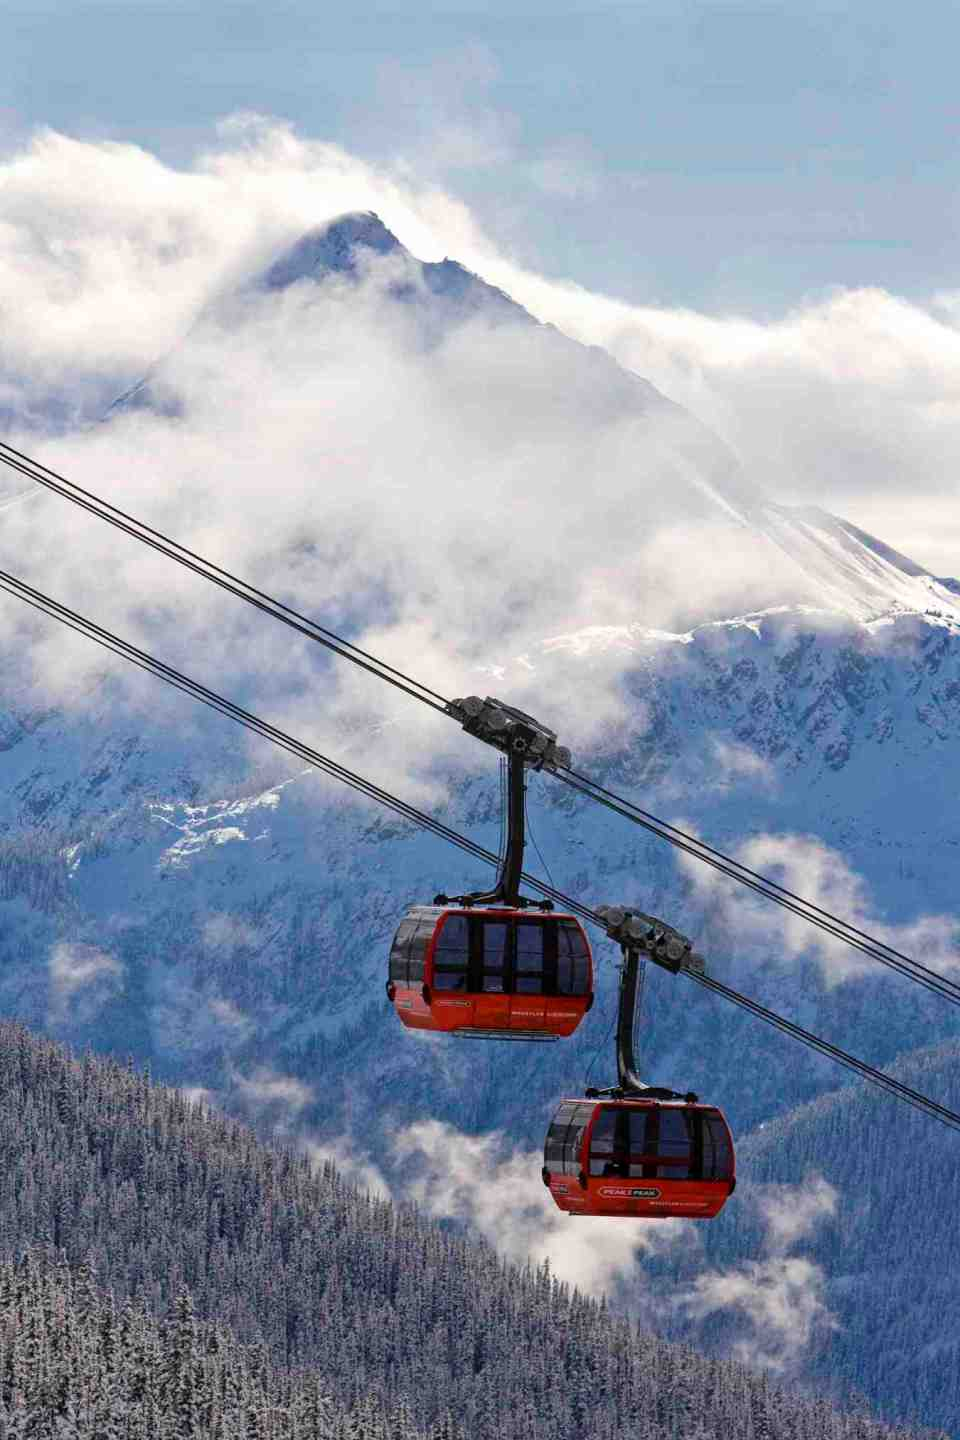 Peak2Peak gondolas near ready for season WhistlerBlackcomb